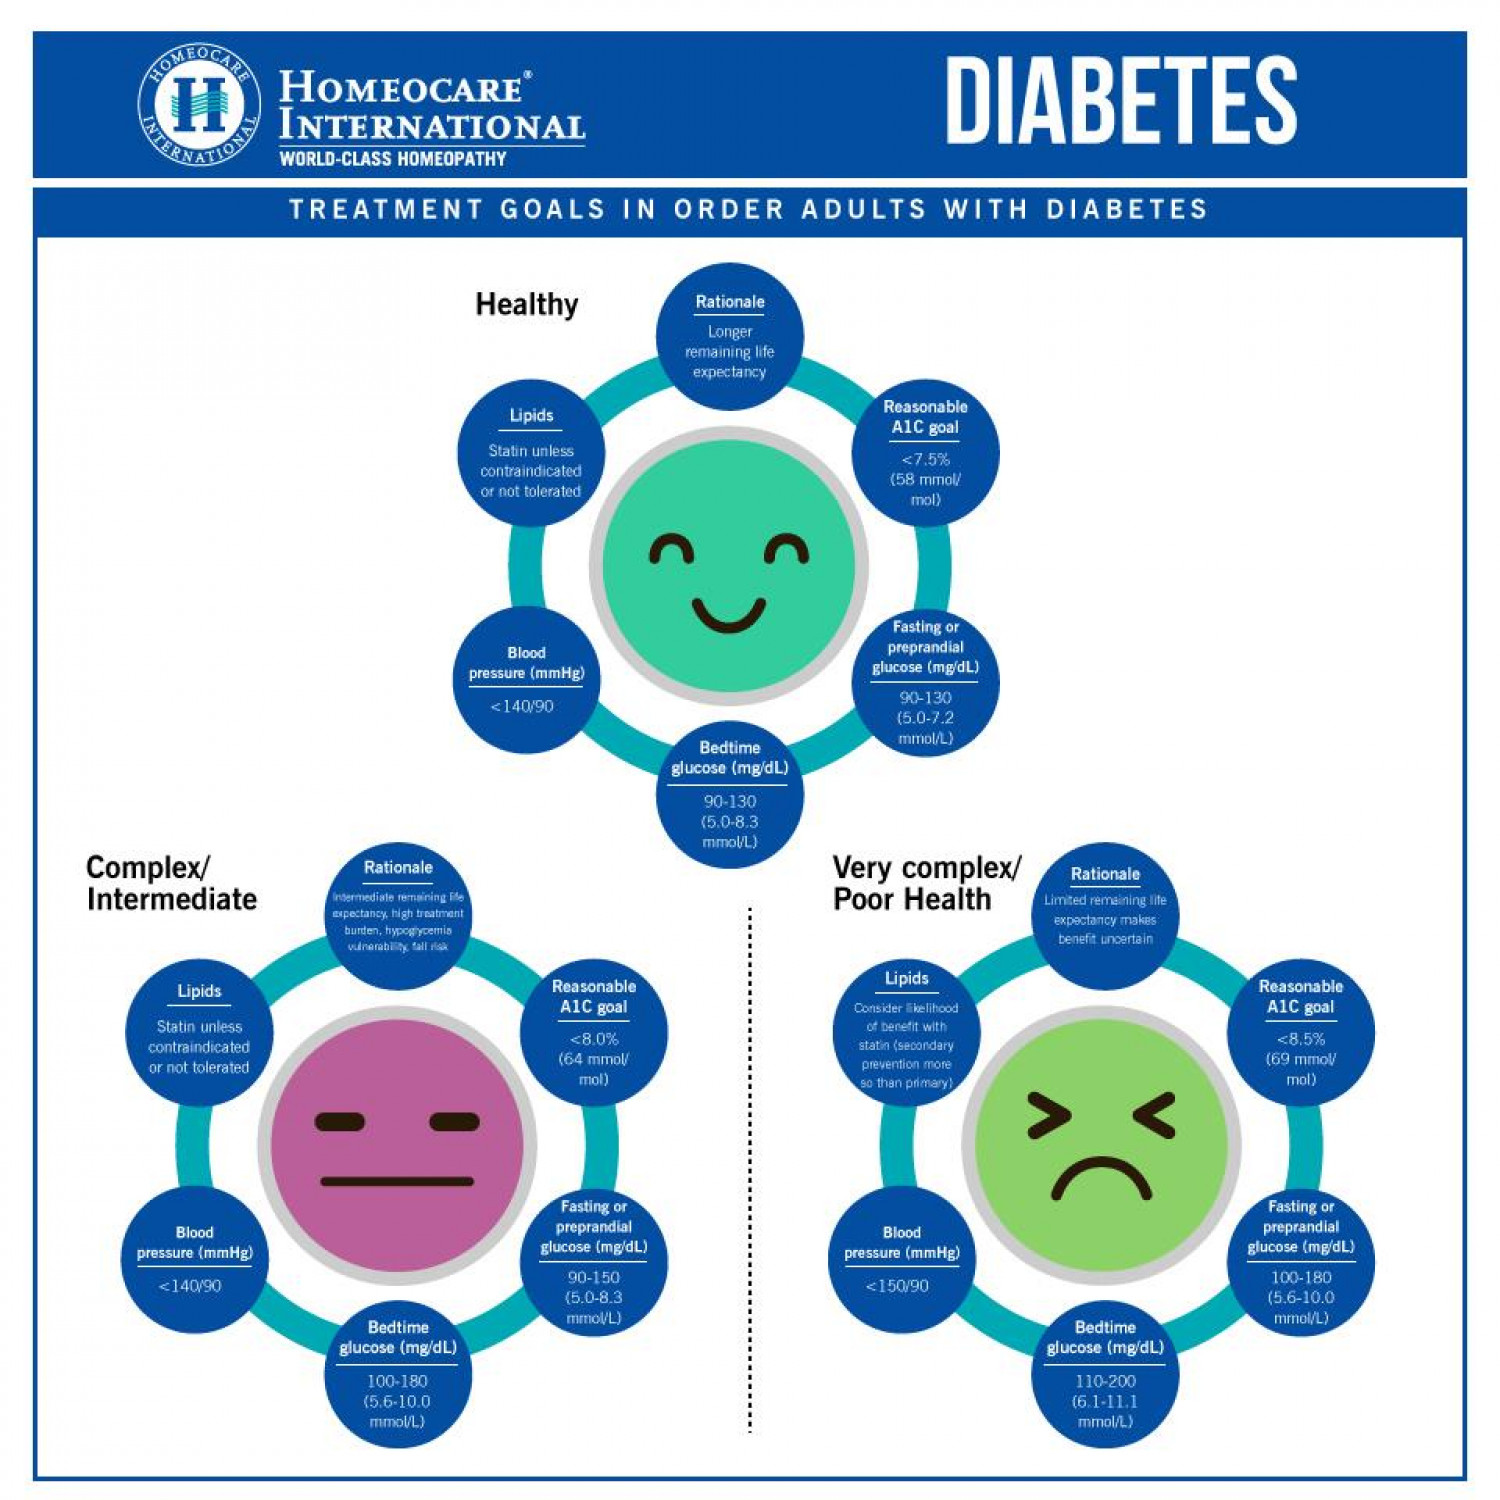 Diabetes Care with Online Homeopathy Treatment Infographic